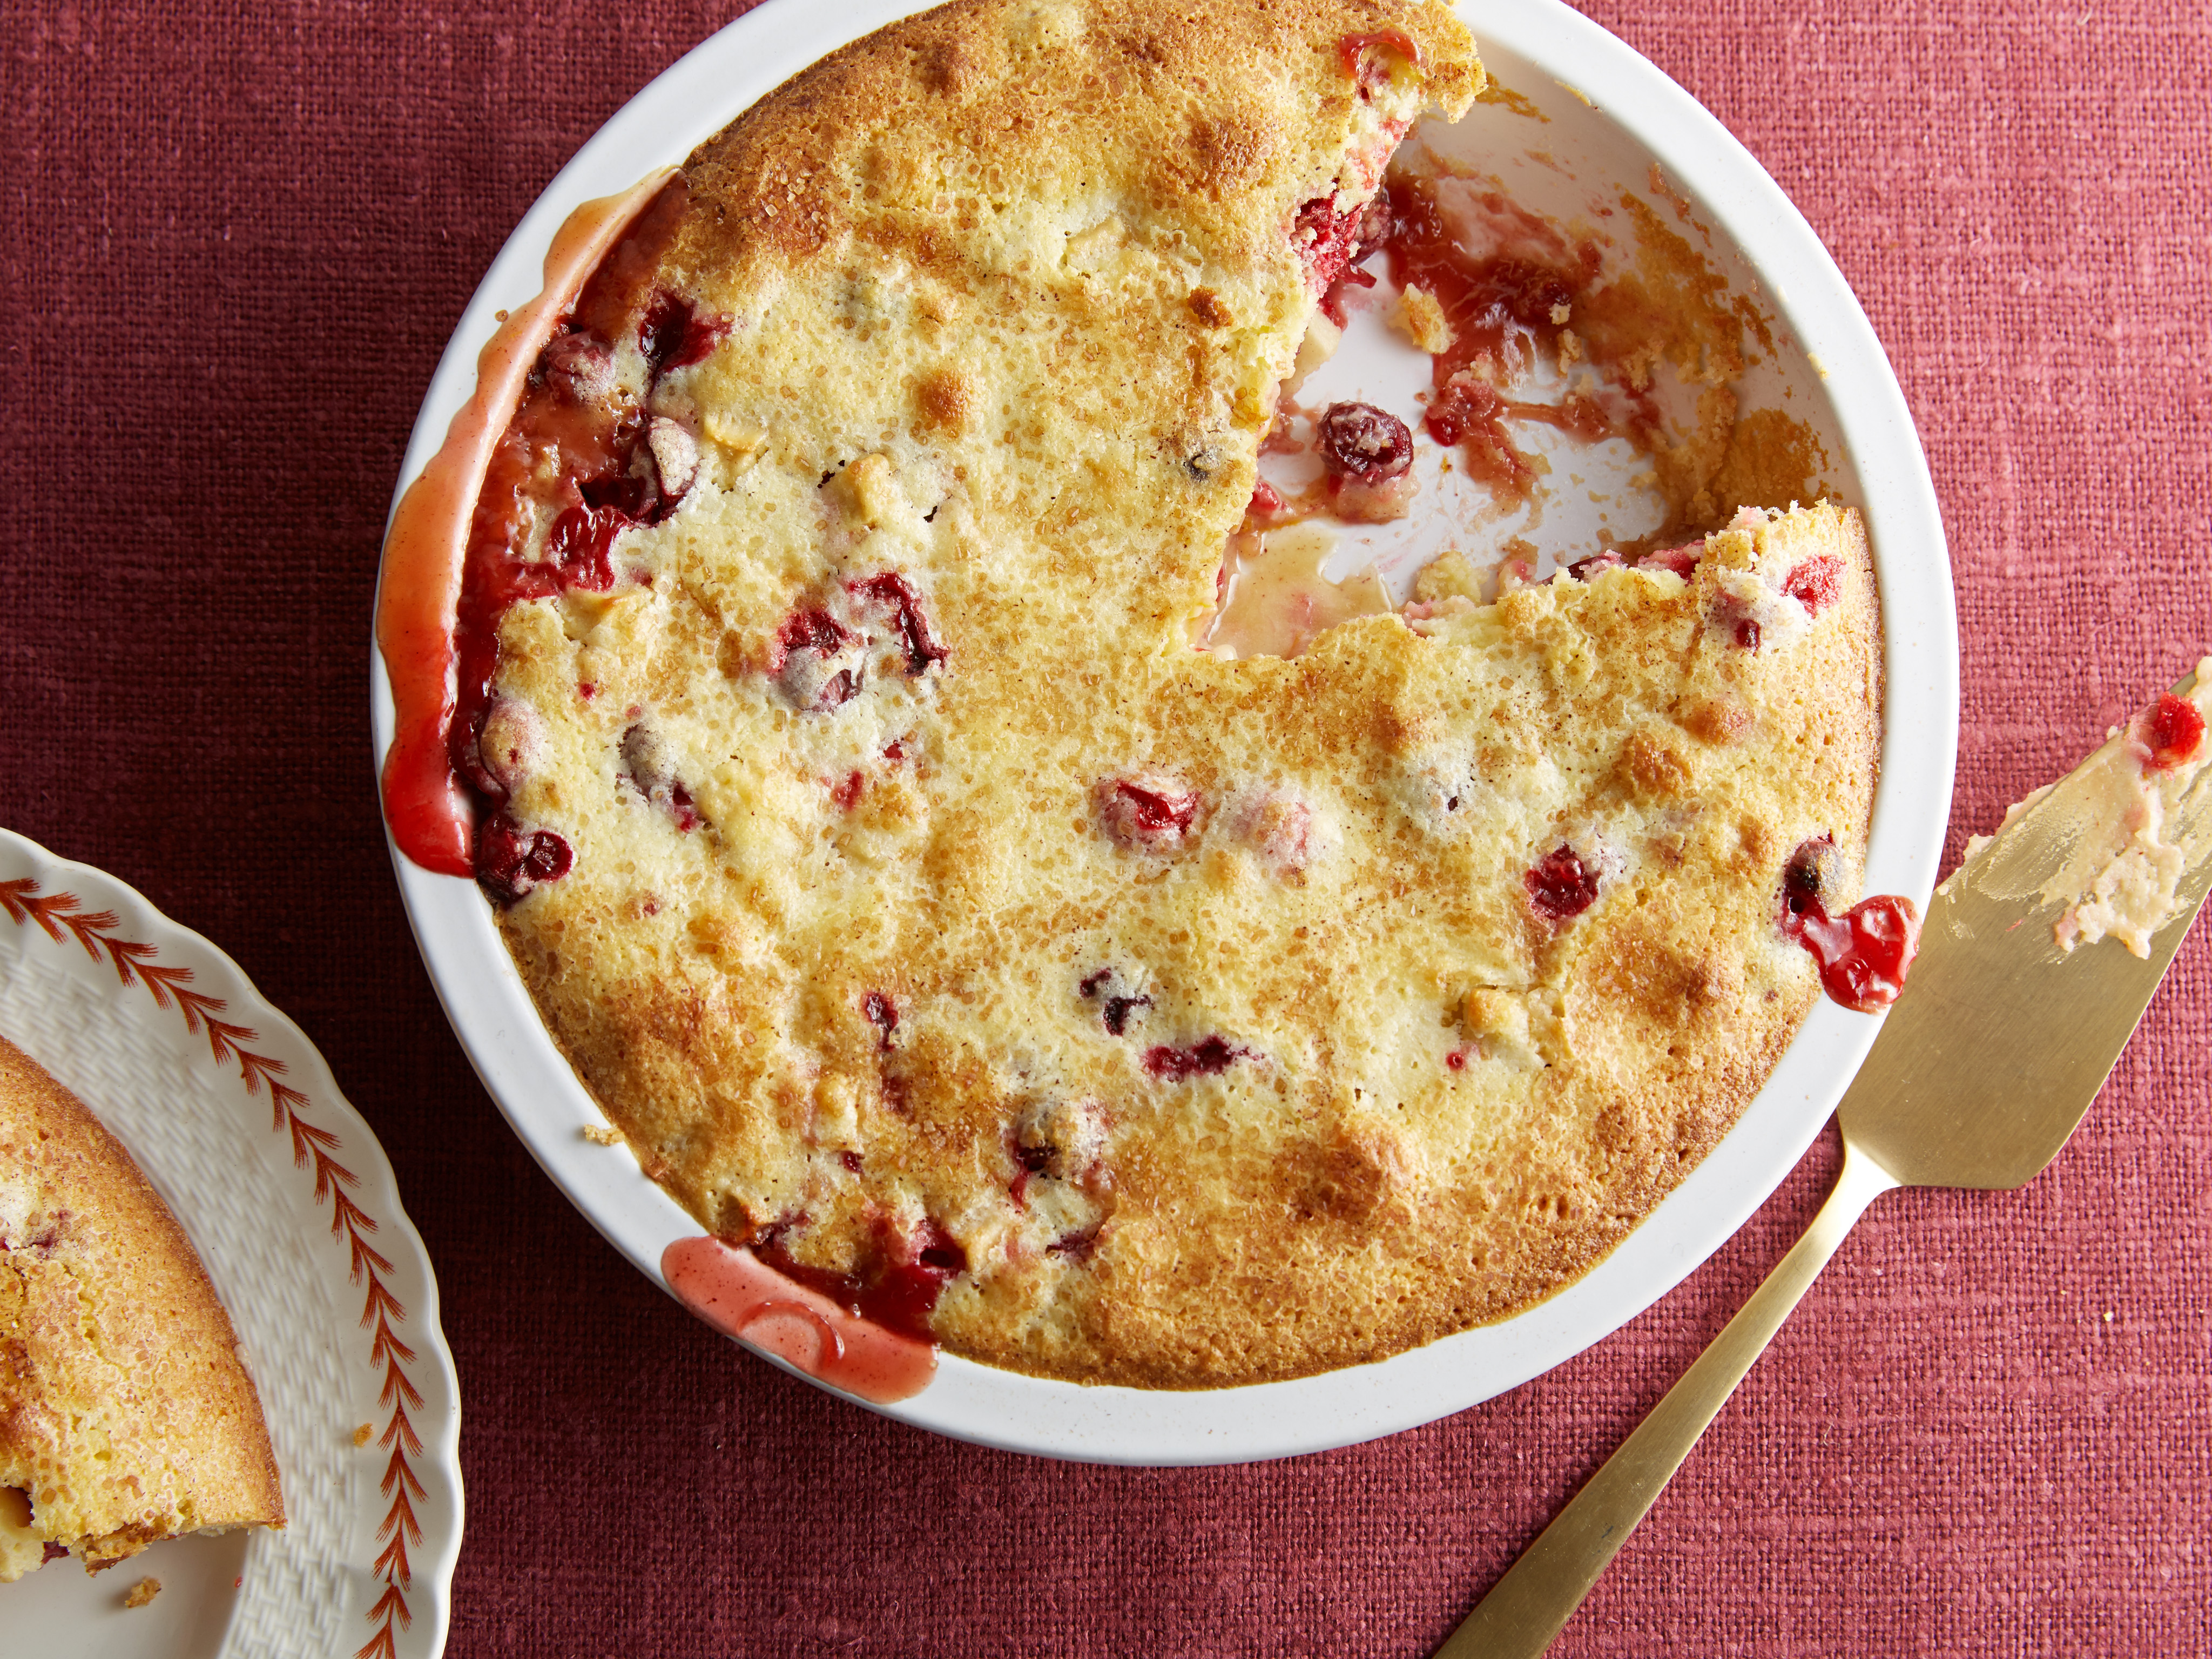 Ina Garten's Easy Cranberry and Apple Cake for Easy Desserts as seen on Food Network's Barefoot Contessa